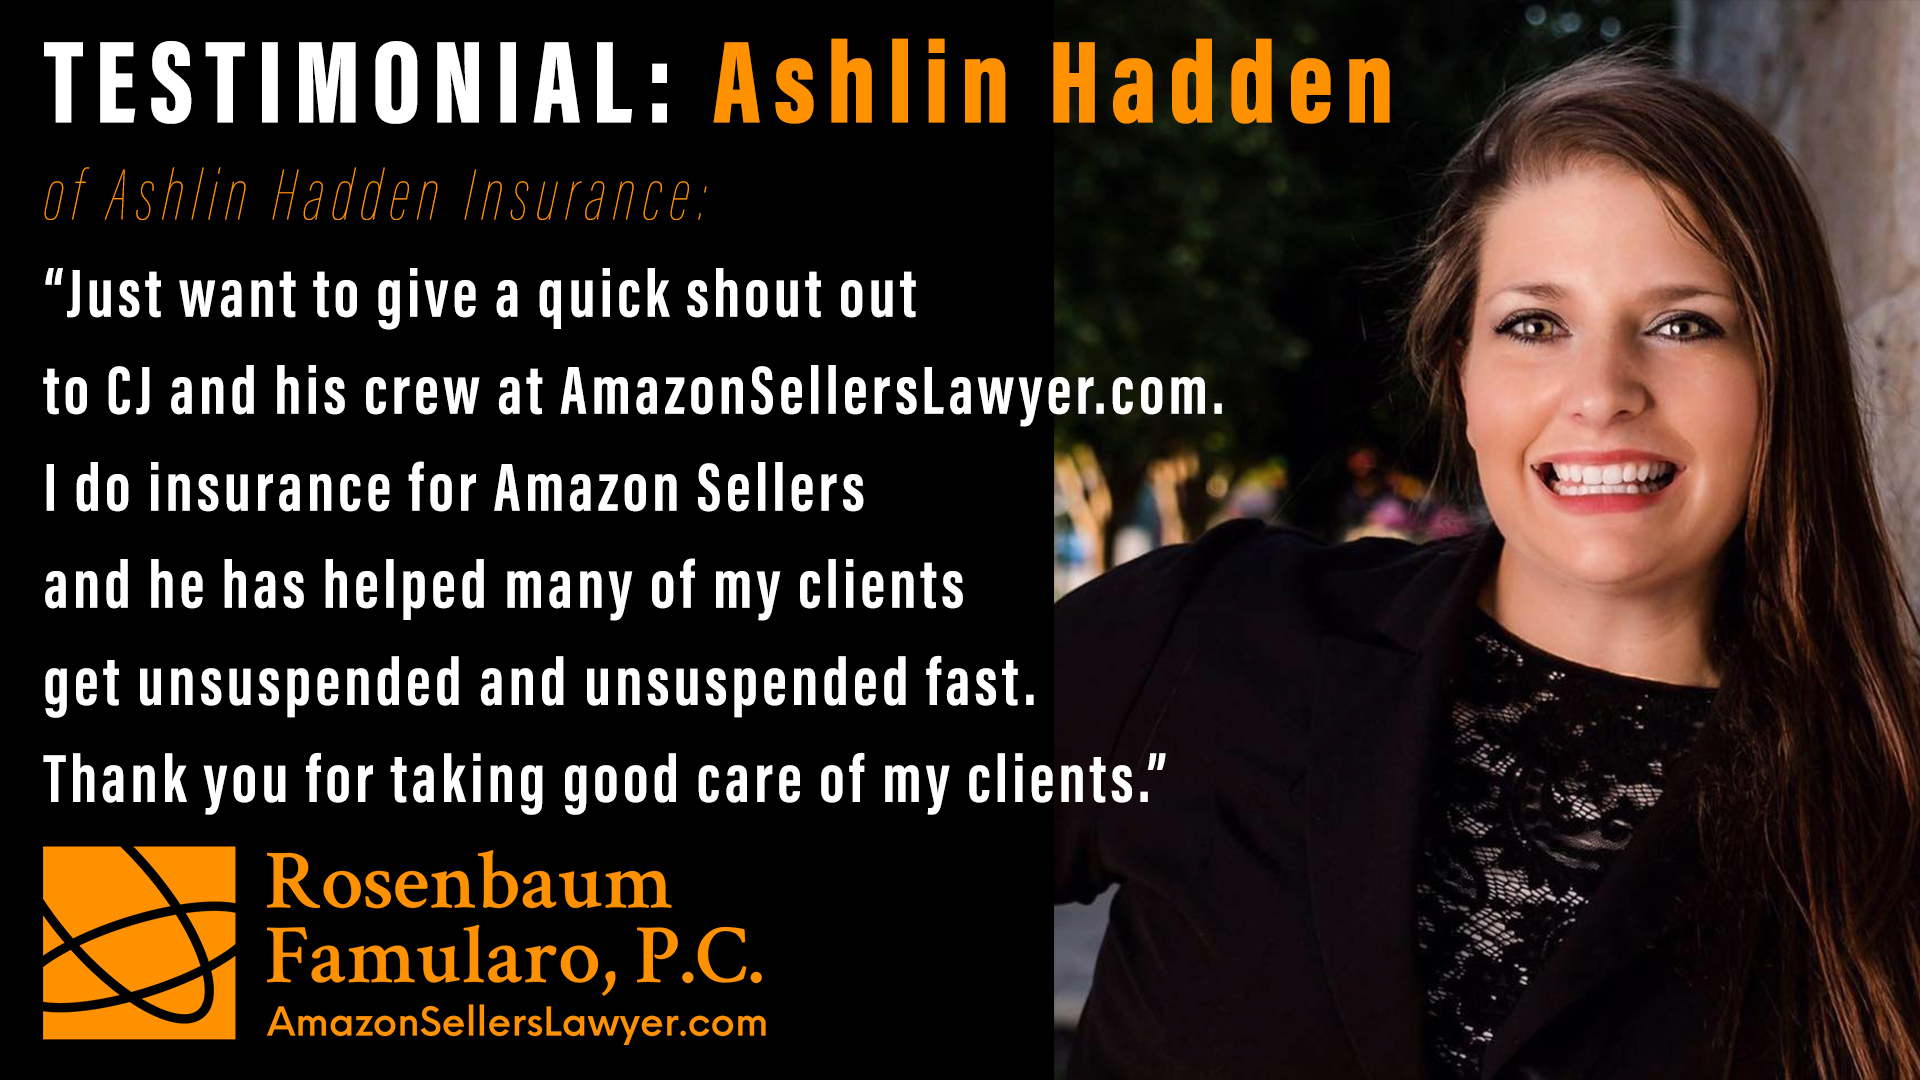 Testimonial - Ashlin Hadden Insurance -insurance for Amazon Sellers